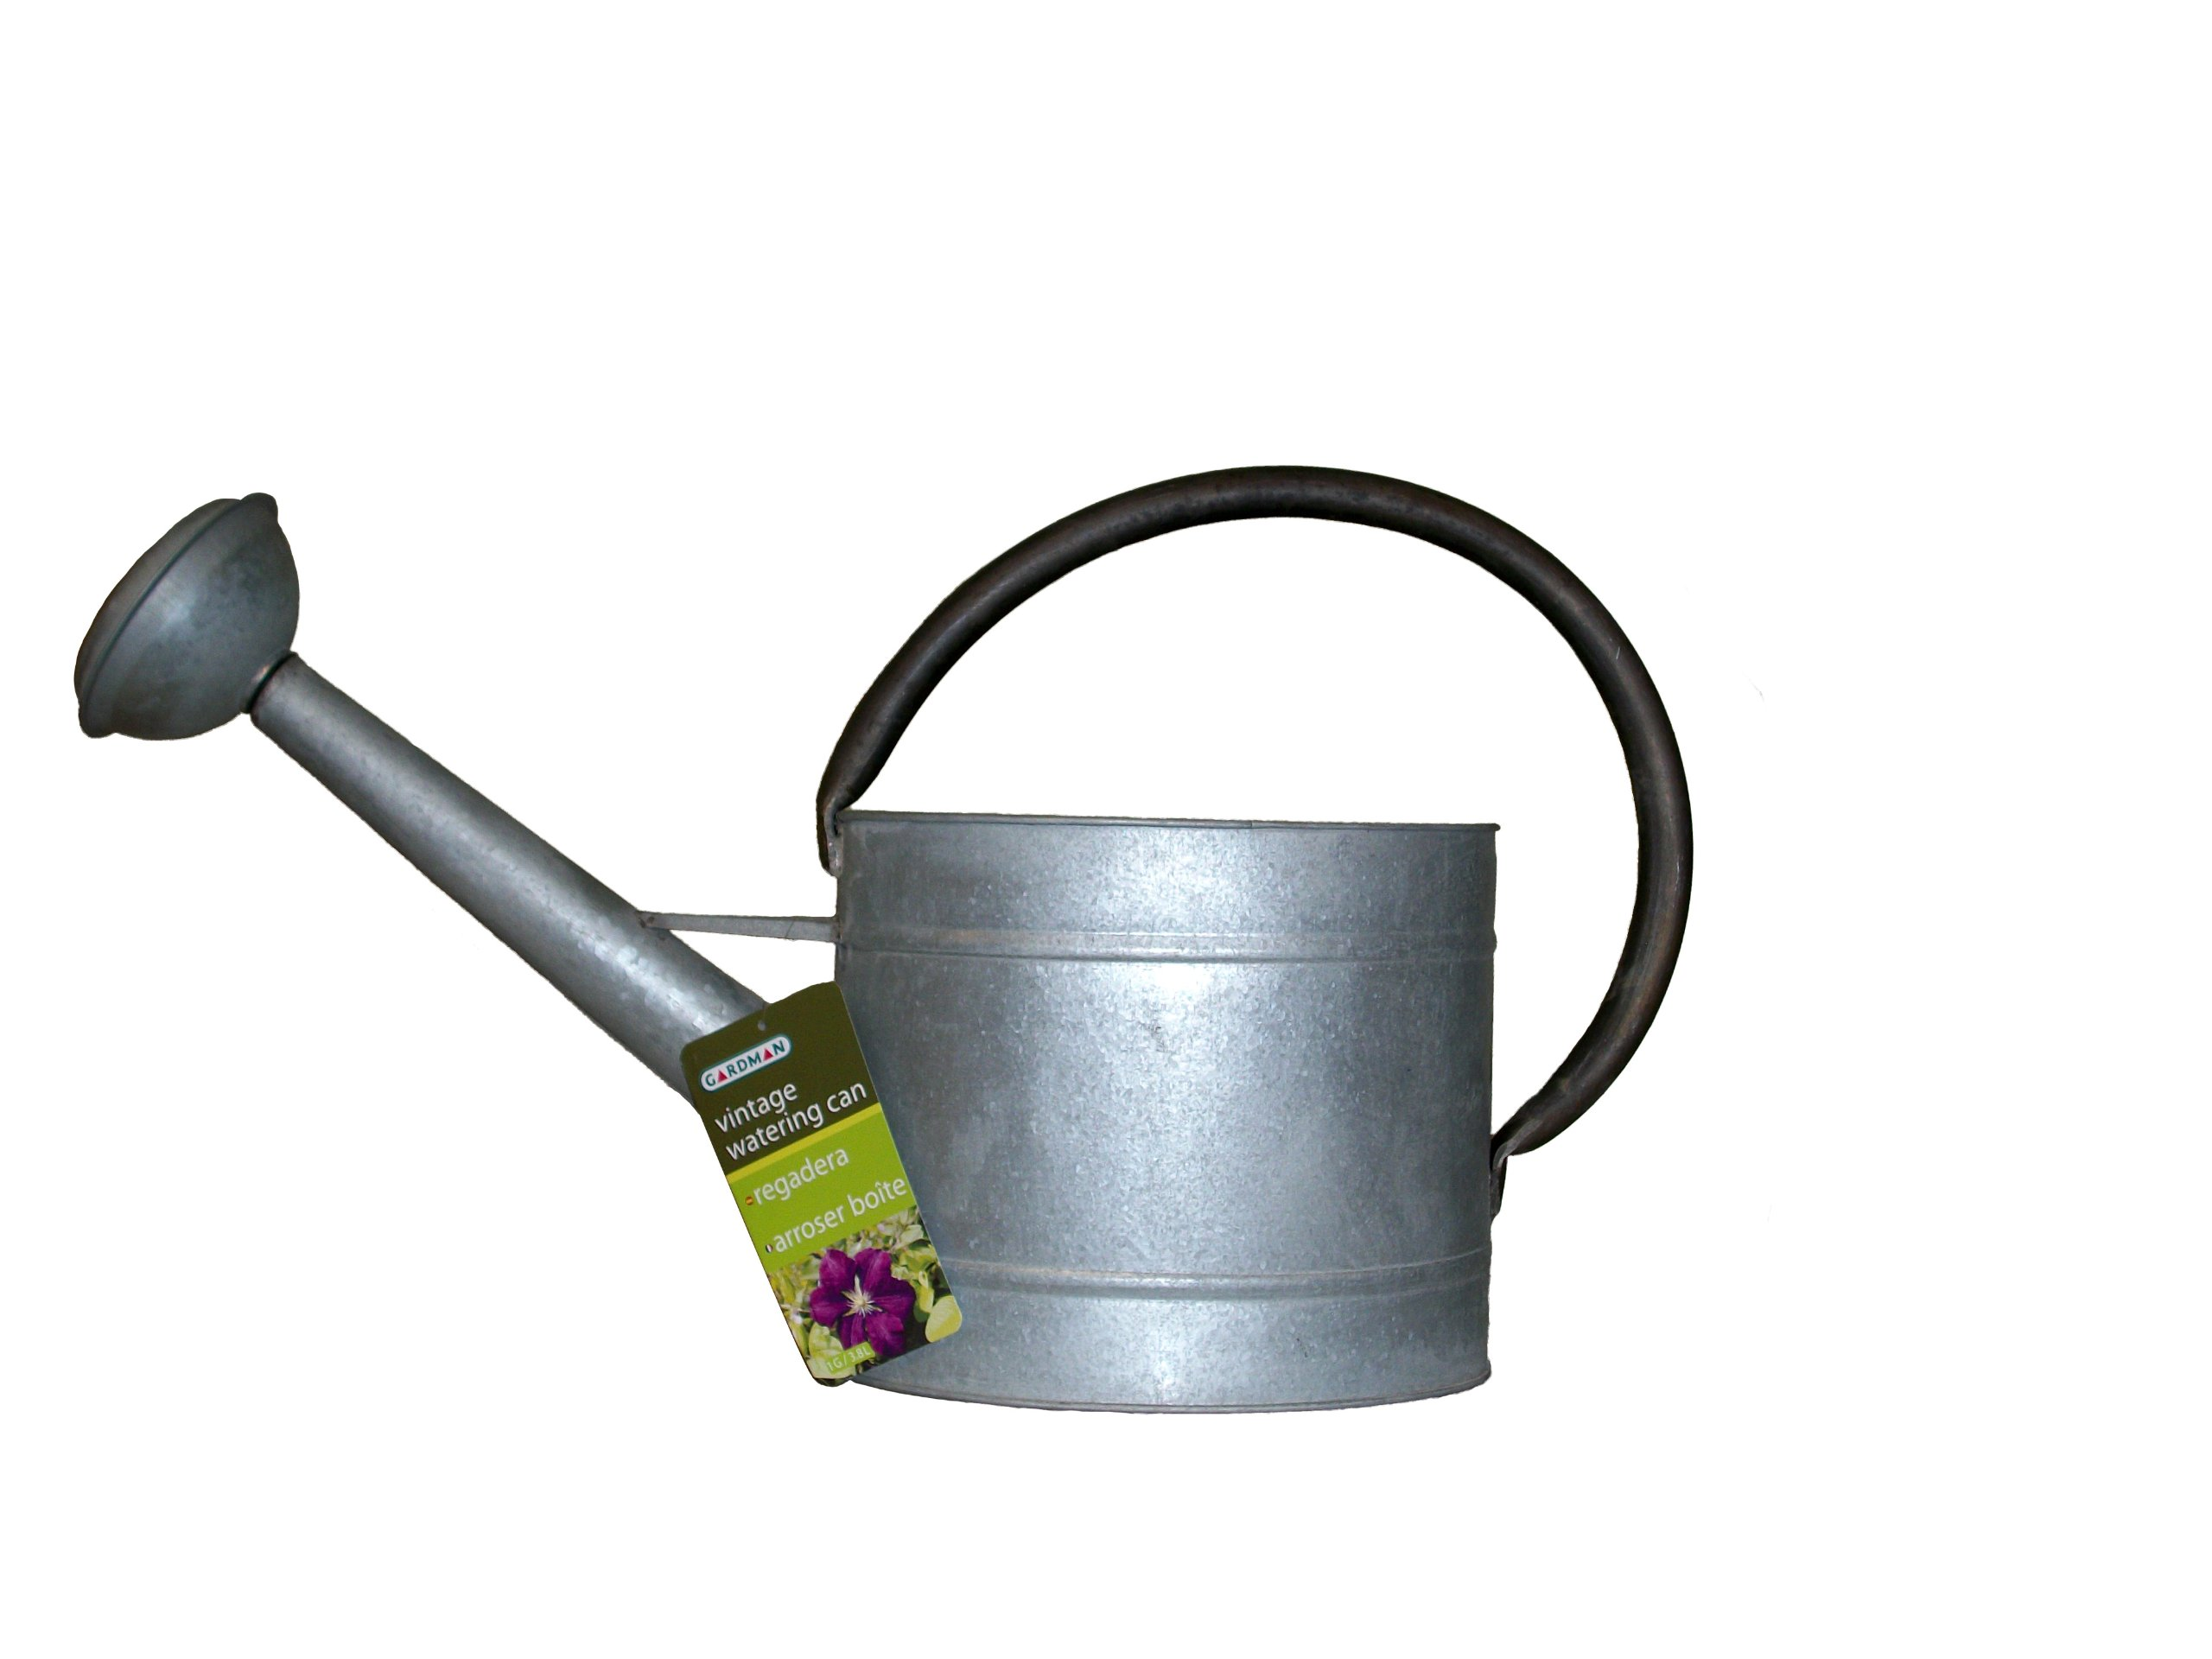 Watering Cans With Long Spouts Decorative Heavy Gauge Galvanized Steel Watering Can